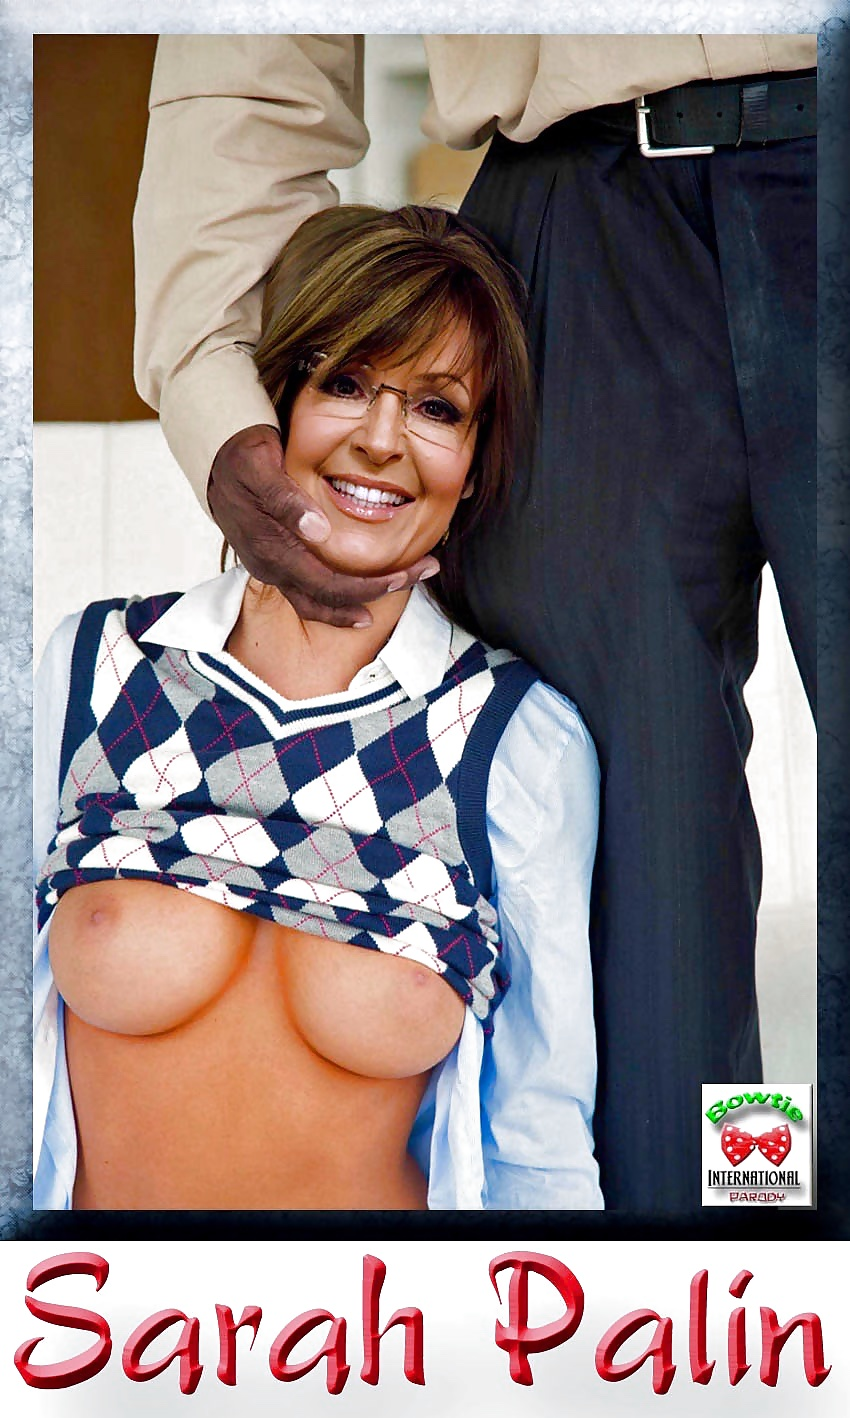 Erotic pictures sarah palin moms home alone